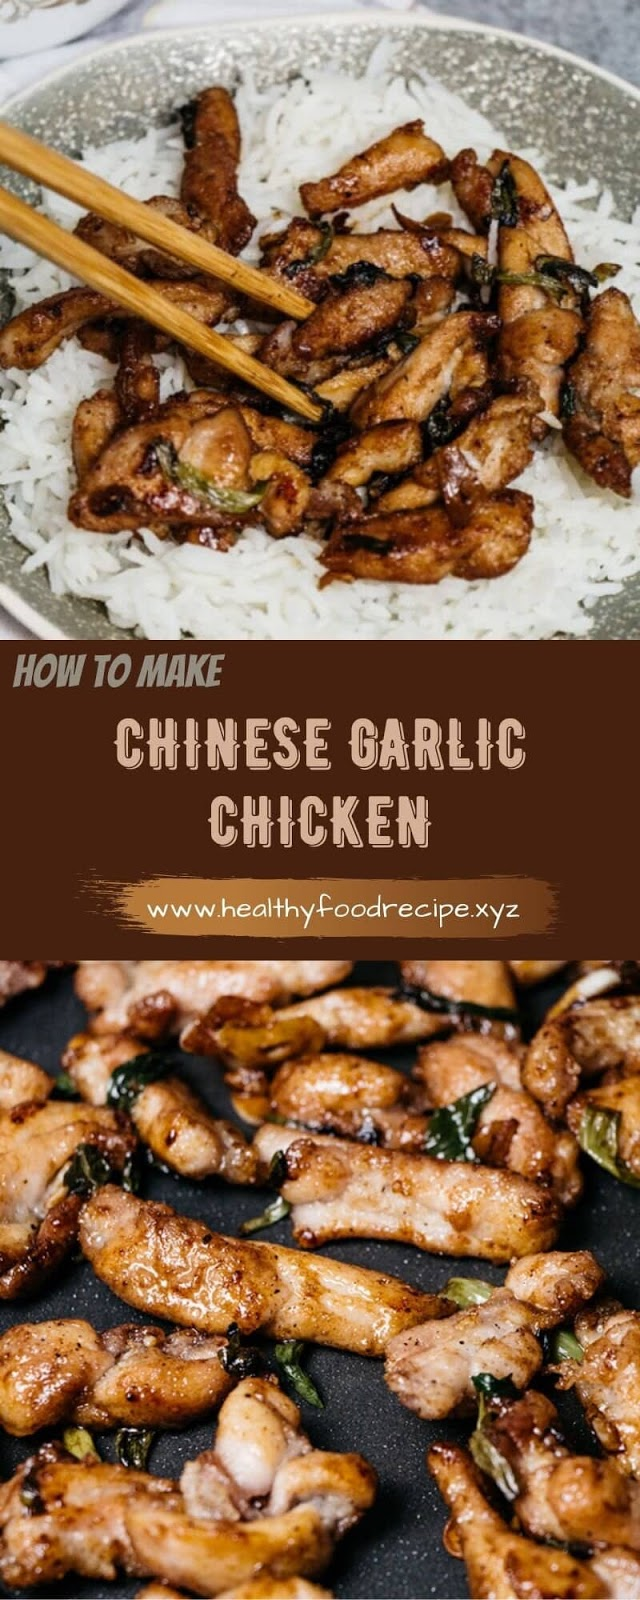 CHINESE GARLIC CHICKEN